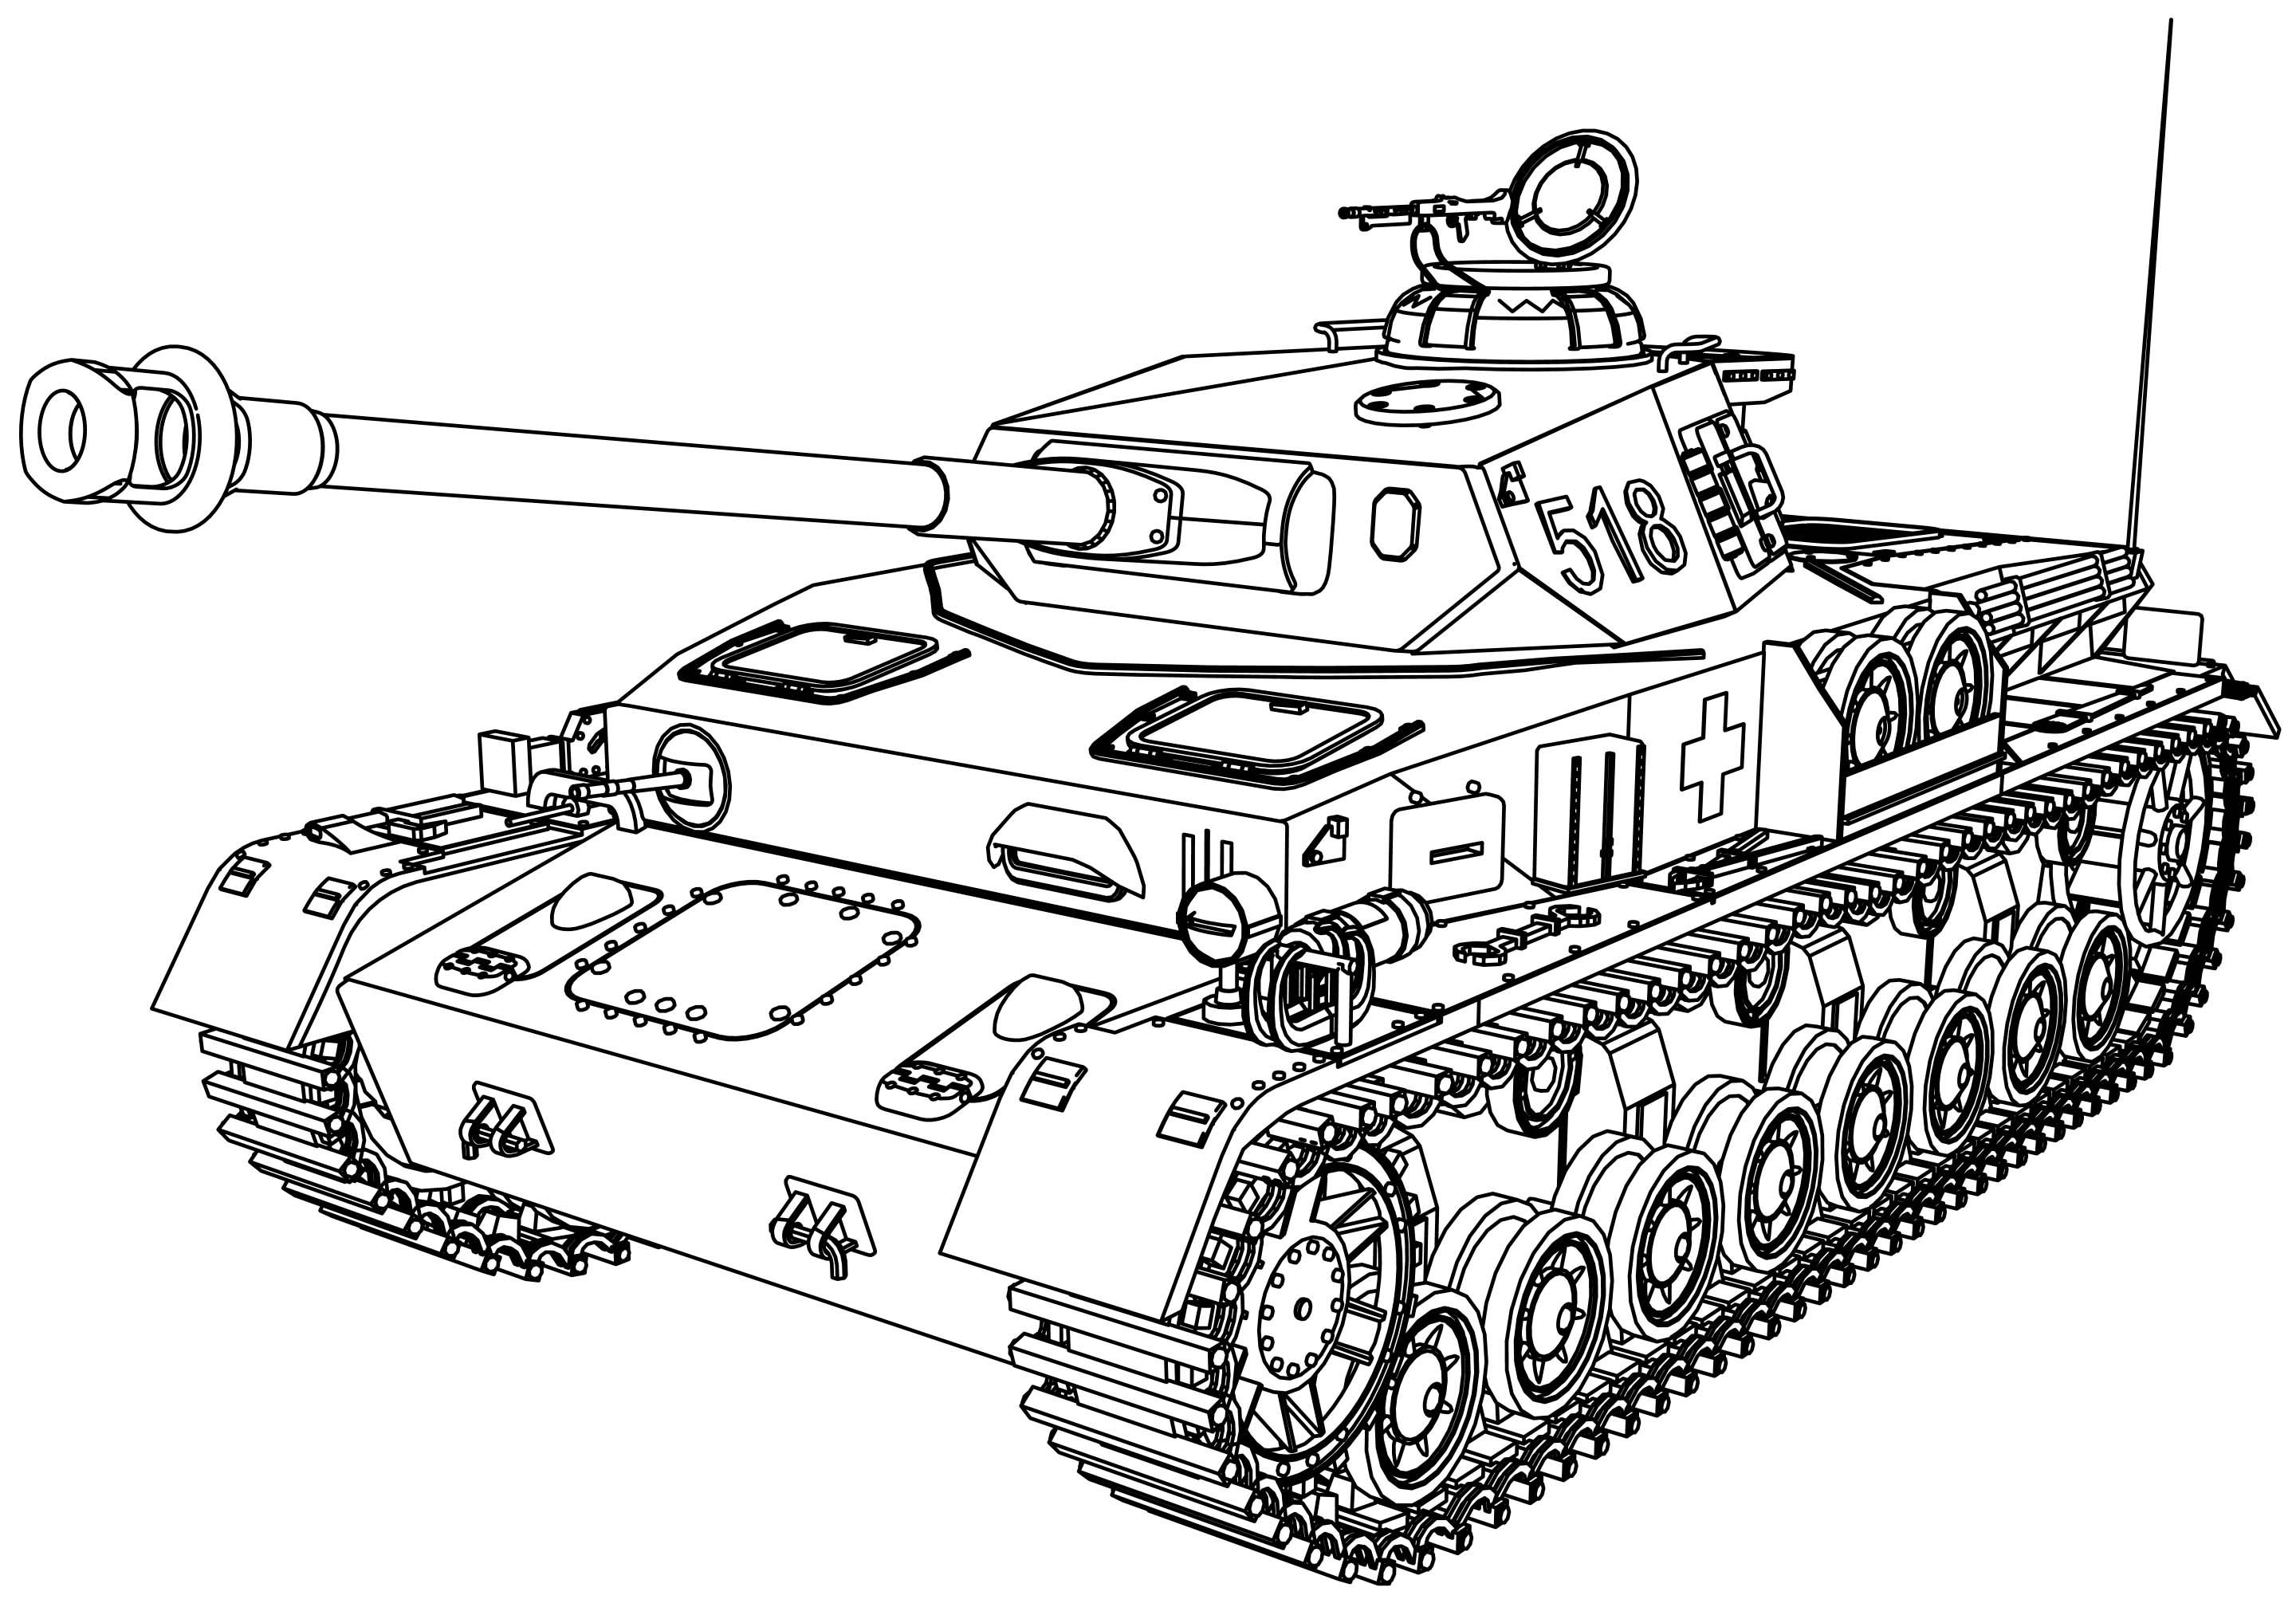 Cool Panzer Tank Coloring Page Tank Drawing Coloring Pages Truck Coloring Pages